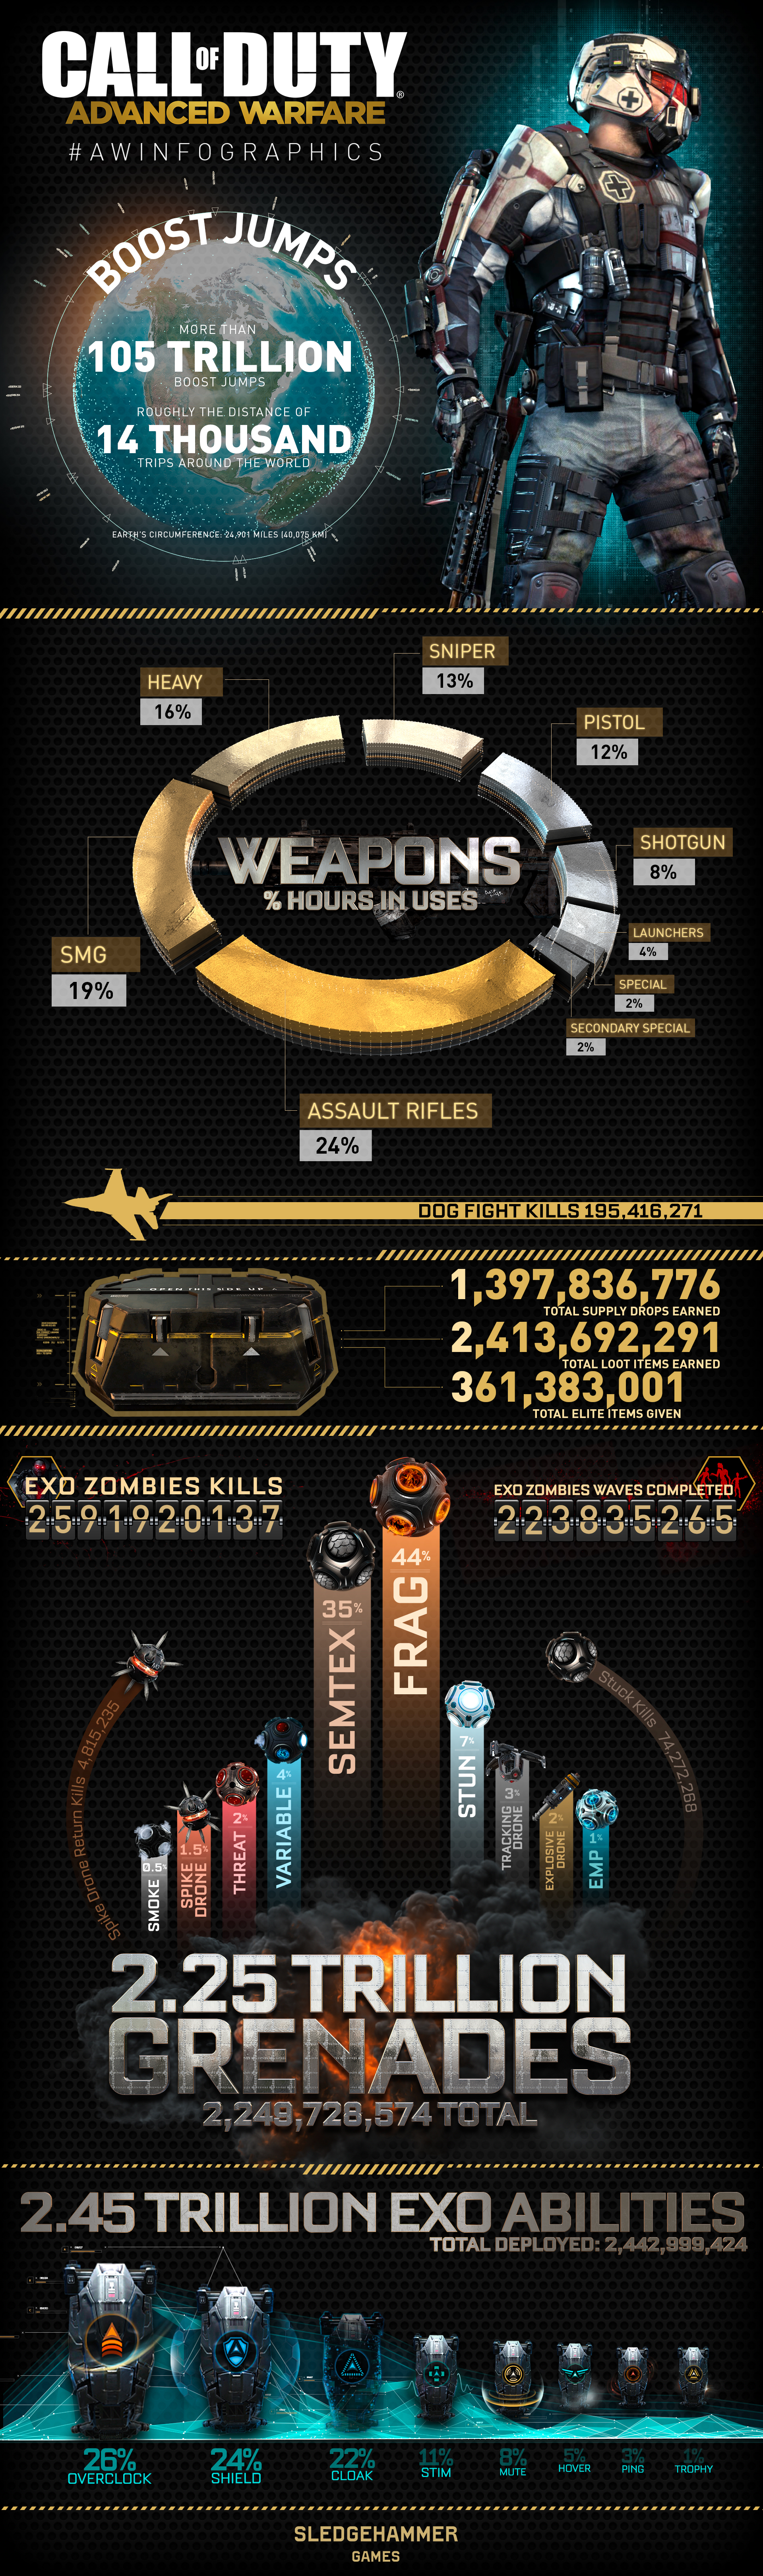 Ps Vita Cod Zombies Over 2 5 Billion Exo Zombies Have Been Killed In Call Of Duty